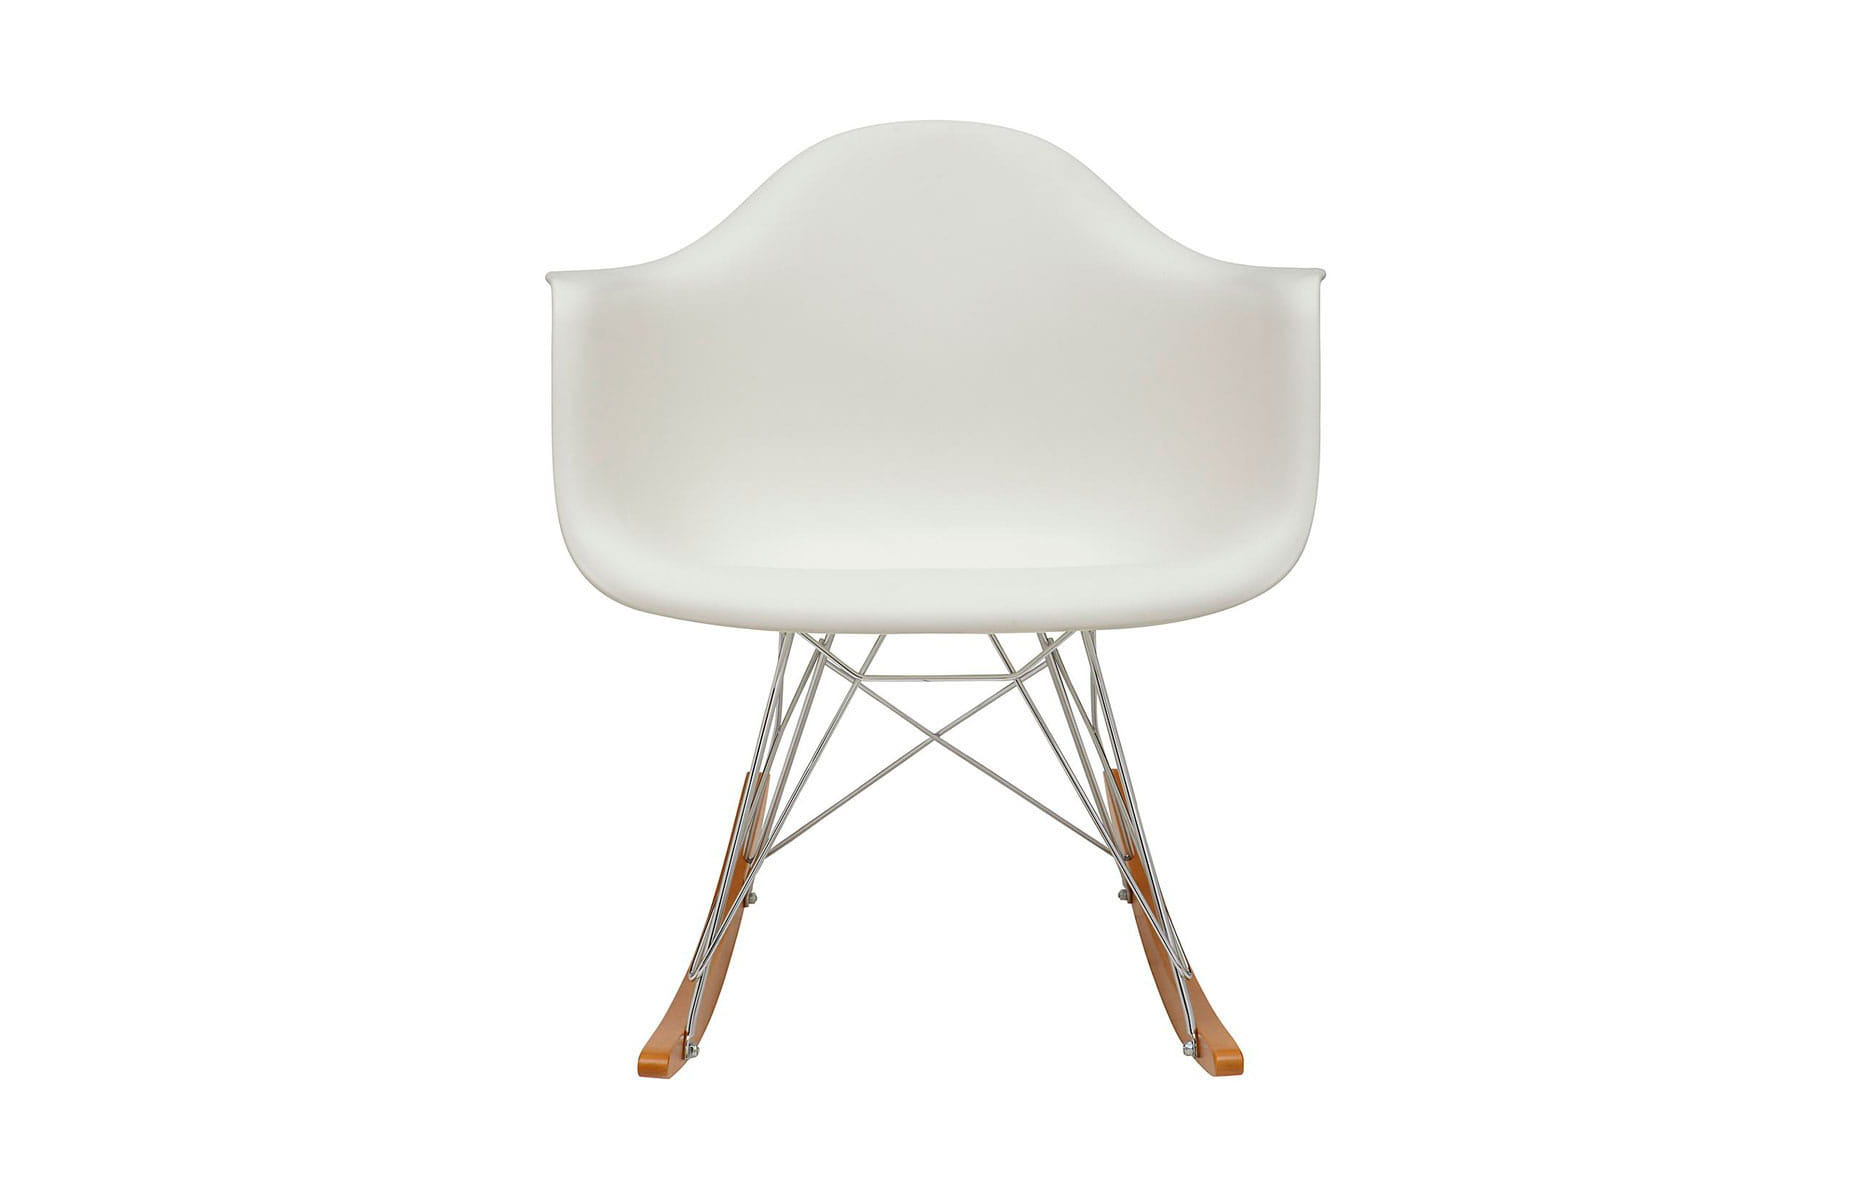 Le rocking chair le on de chaise bascule for Chaise bascule eames rar